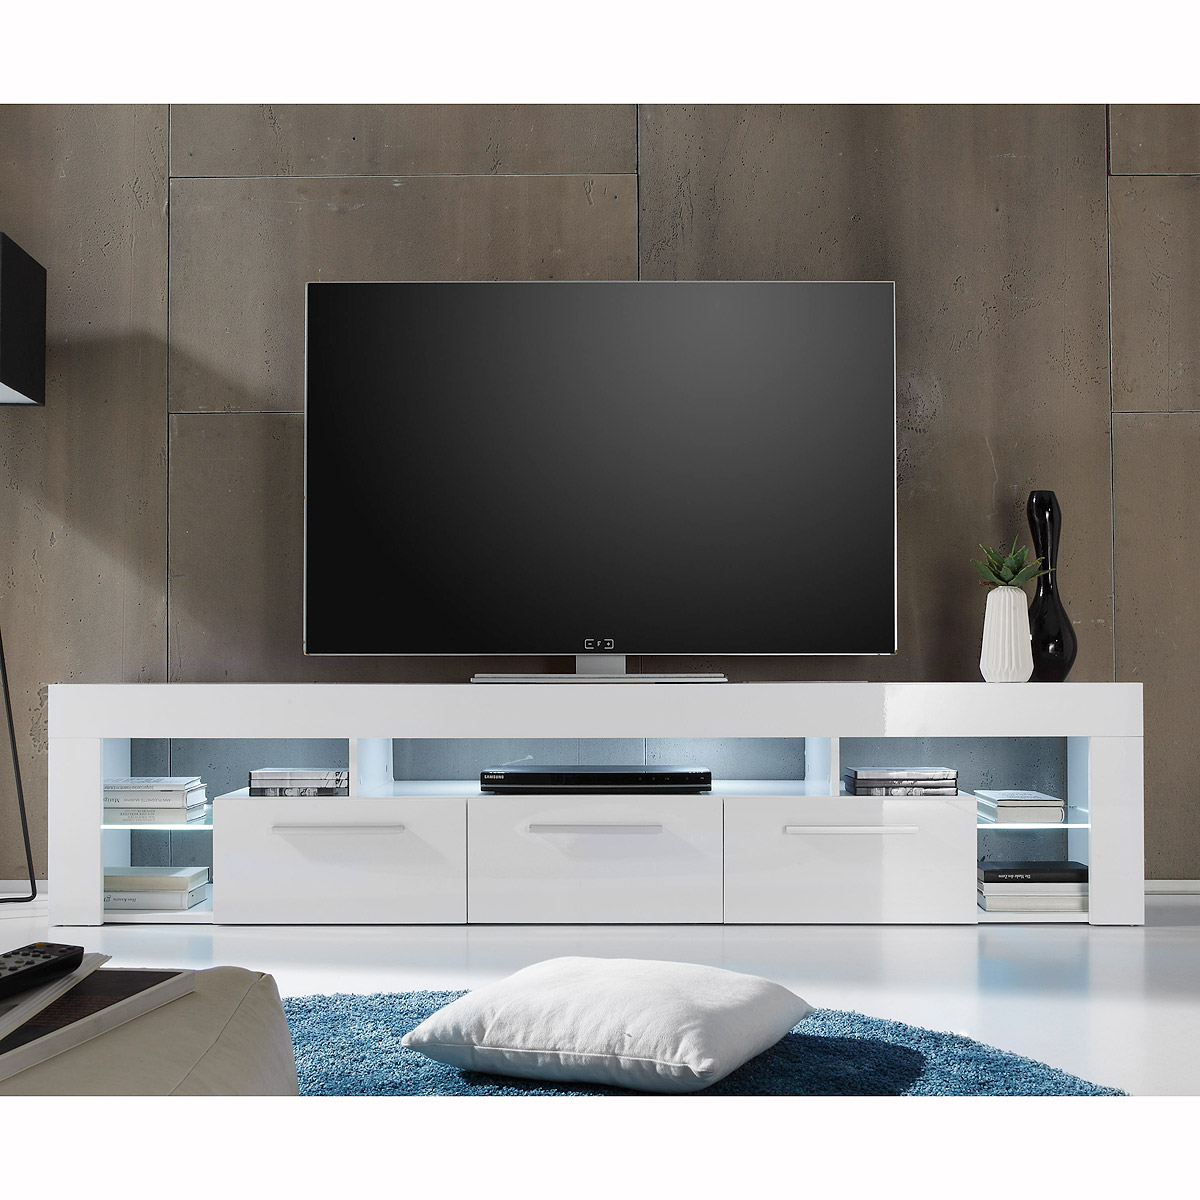 lowboard score kommode tv board in wei hochglanz breite 200 cm eur 227 95 picclick de. Black Bedroom Furniture Sets. Home Design Ideas